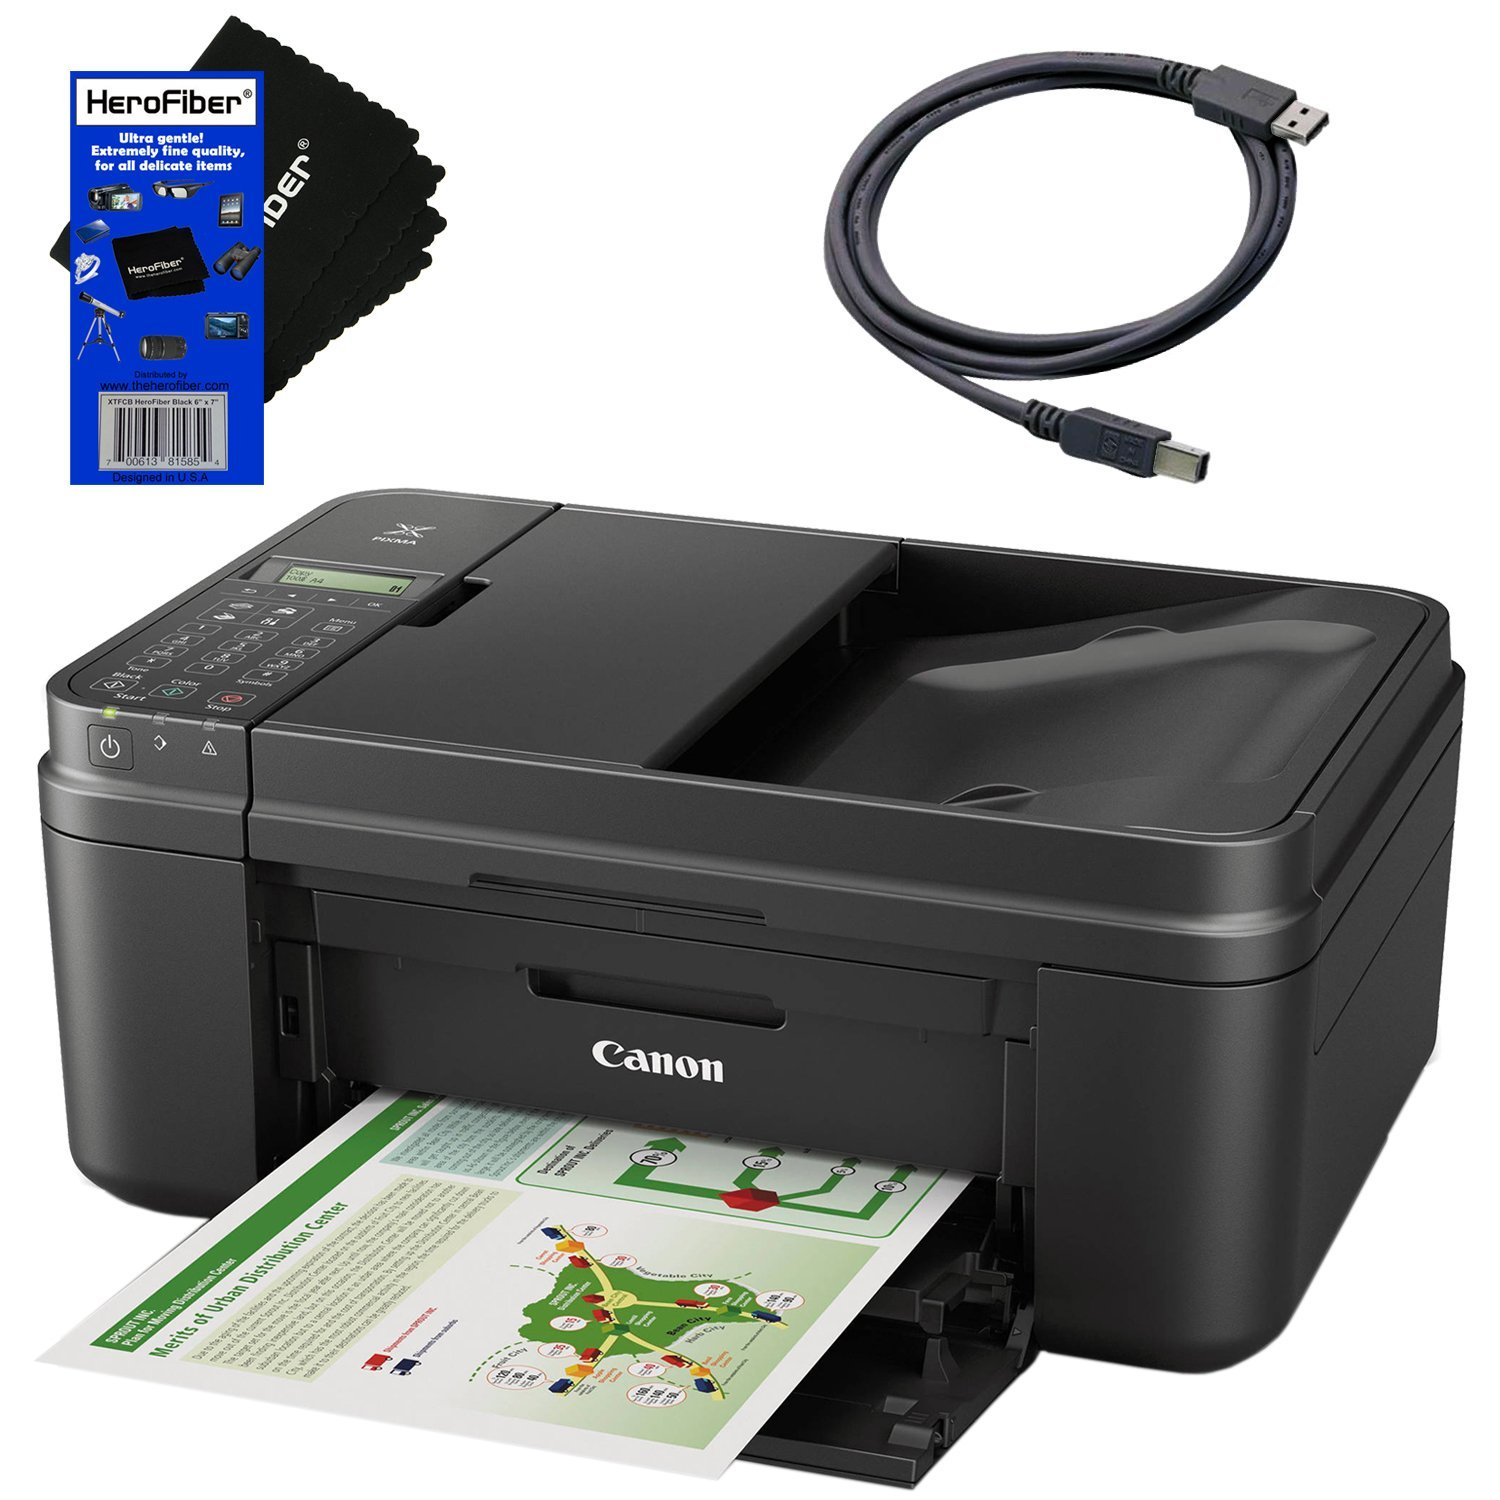 Canon all in one wireless printer, Inkjet PIXMA MX492 (Black) with Print, Copy, Scan, Fax & Google Cloud Print Compatible + USB Printer Cable + HeroFiber Cleaning Cloth by HeroFiber